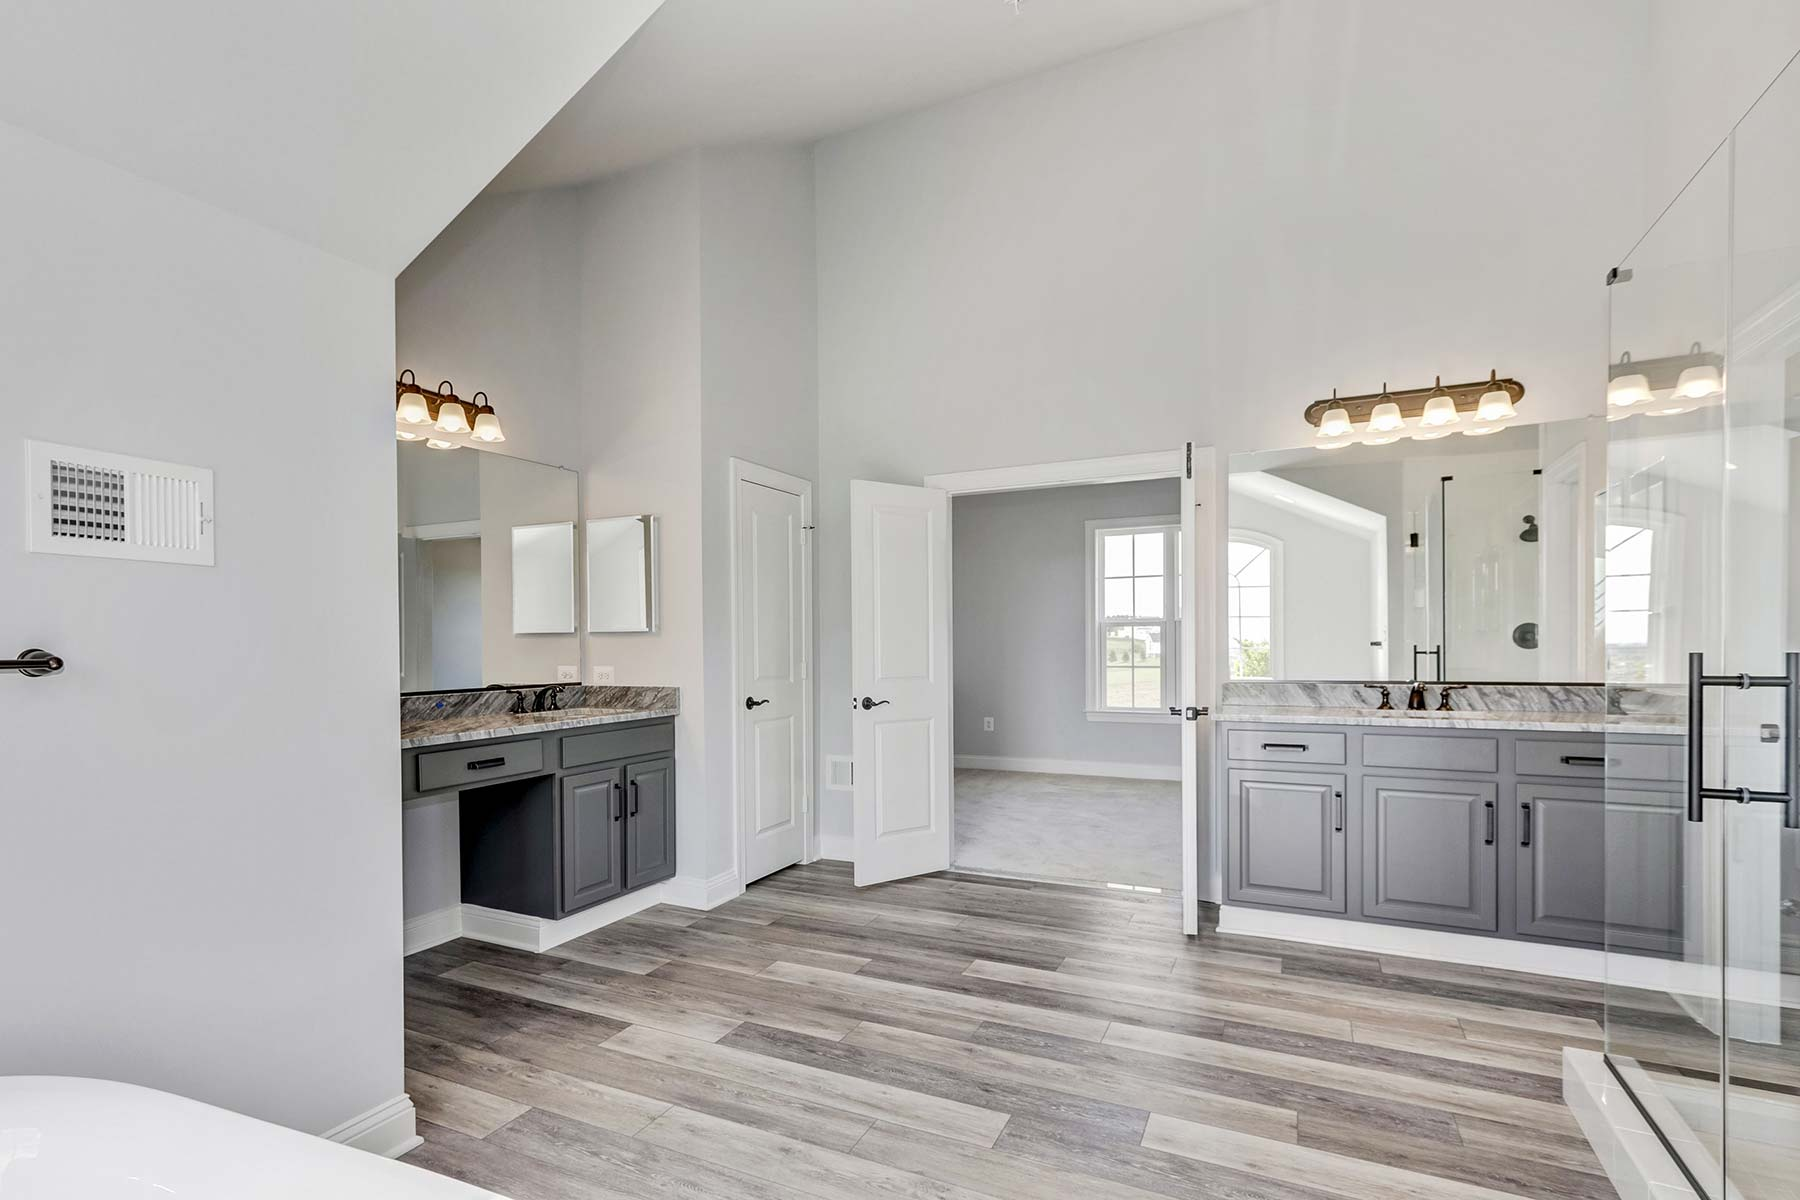 Bathroom, Finished Custom Home, Kenwood, Black Rock, Craftmark Homes